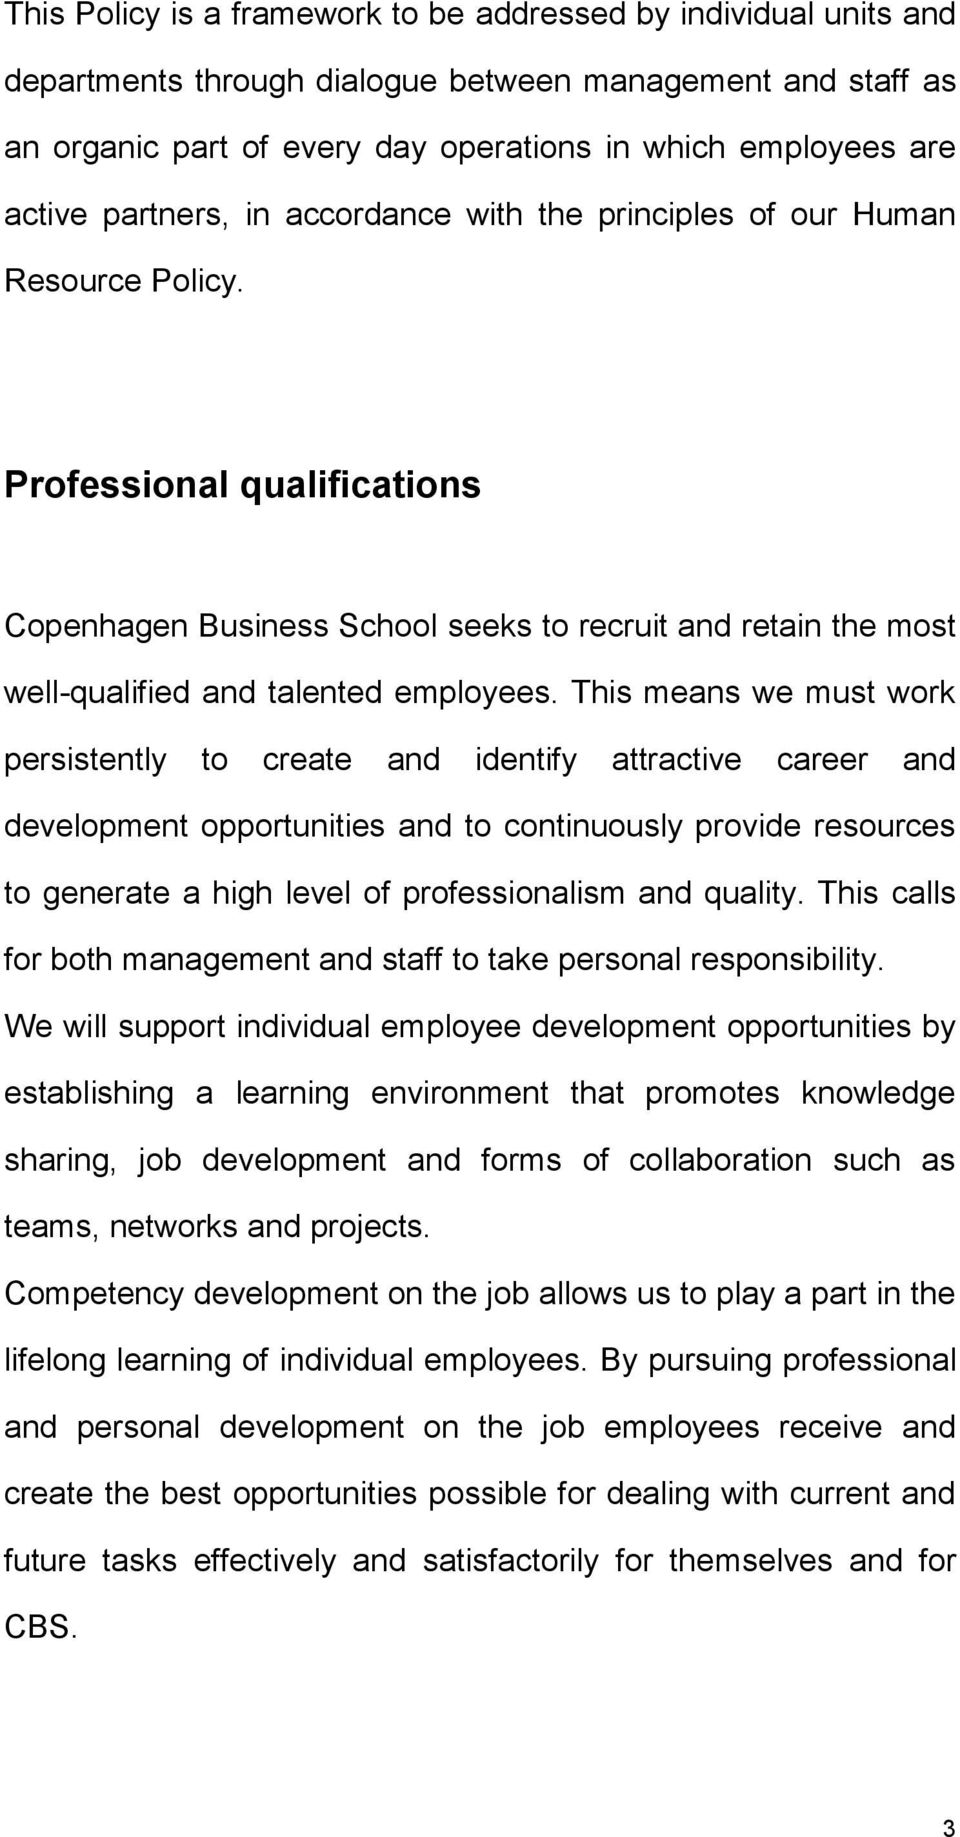 Professional qualifications Copenhagen Business School seeks to recruit and retain the most well-qualified and talented employees.